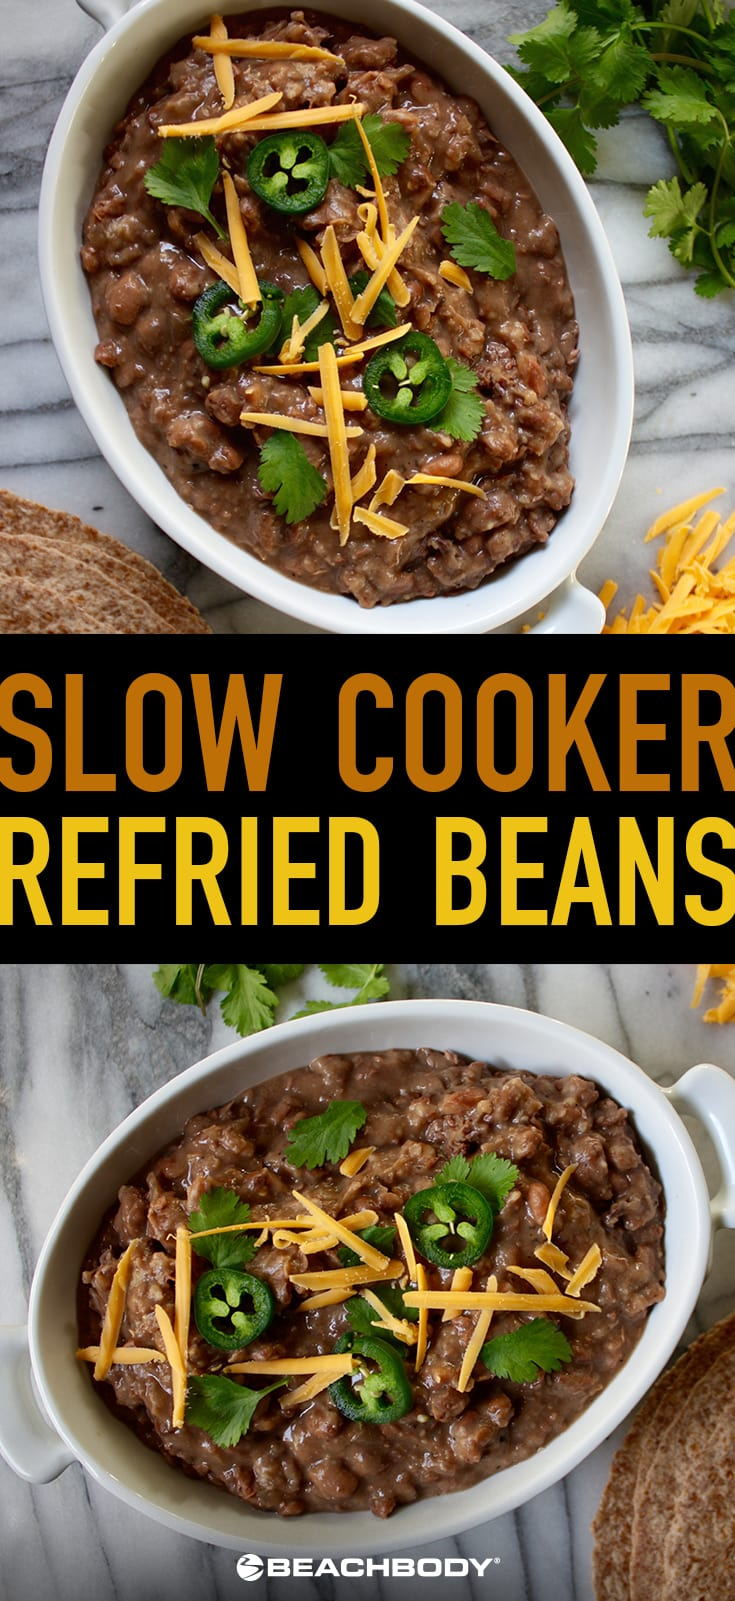 These delicious slow cooker refried beans combine onion, garlic, salt, pepper, and a dash of heat and freeze well for later too!